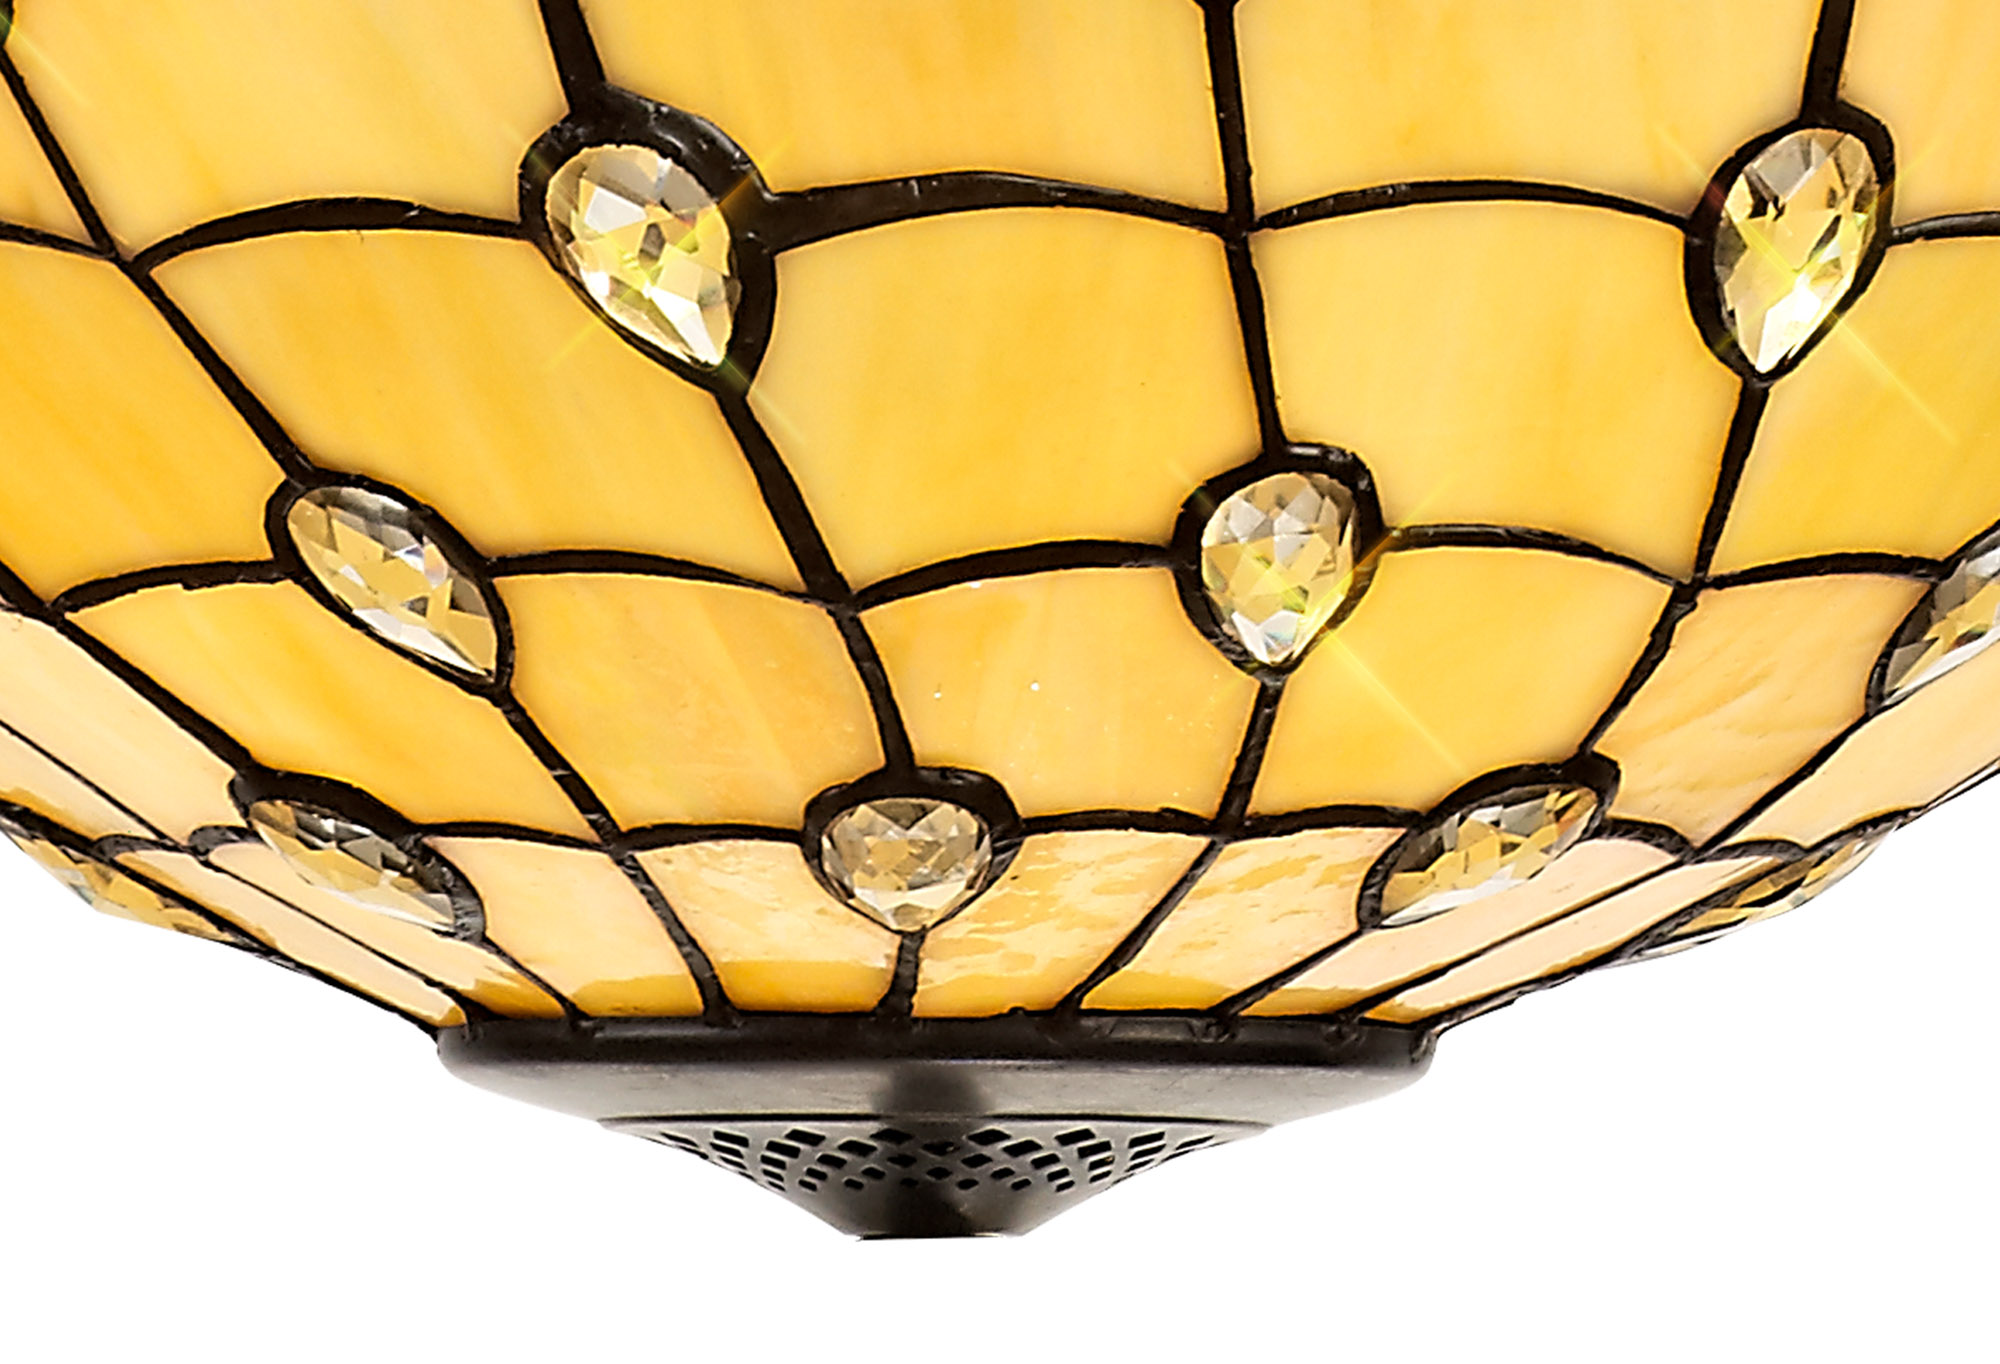 2 Light Octagonal Floor Lamp E27 With 50cm Tiffany Shade, Beige/Clear Crystal/Aged Antique Brass